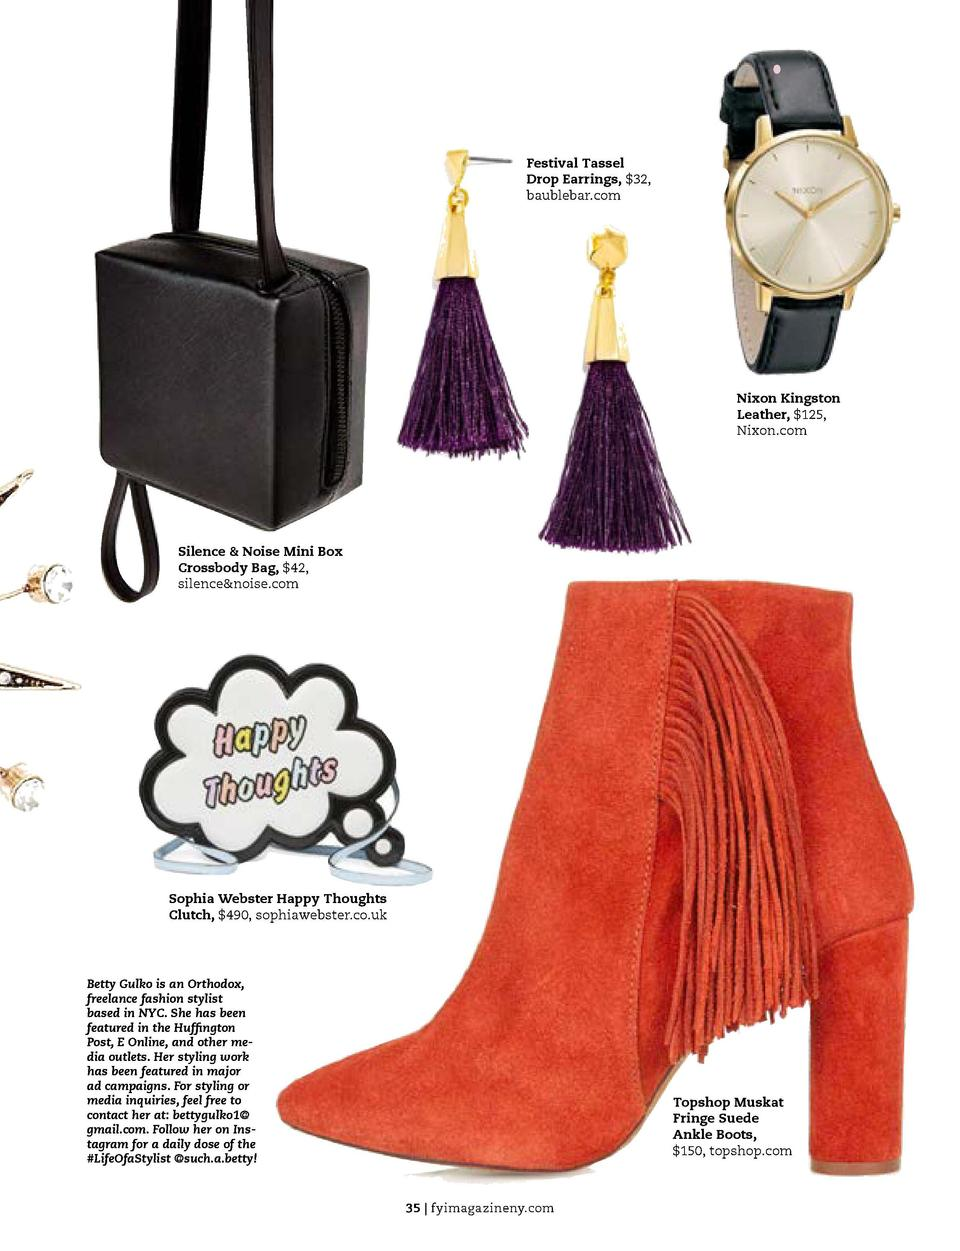 FASHION  the beauty guide  fall accessory report  Festival Tassel Drop Earrings,  32, baublebar.com  Today it   s all abou...